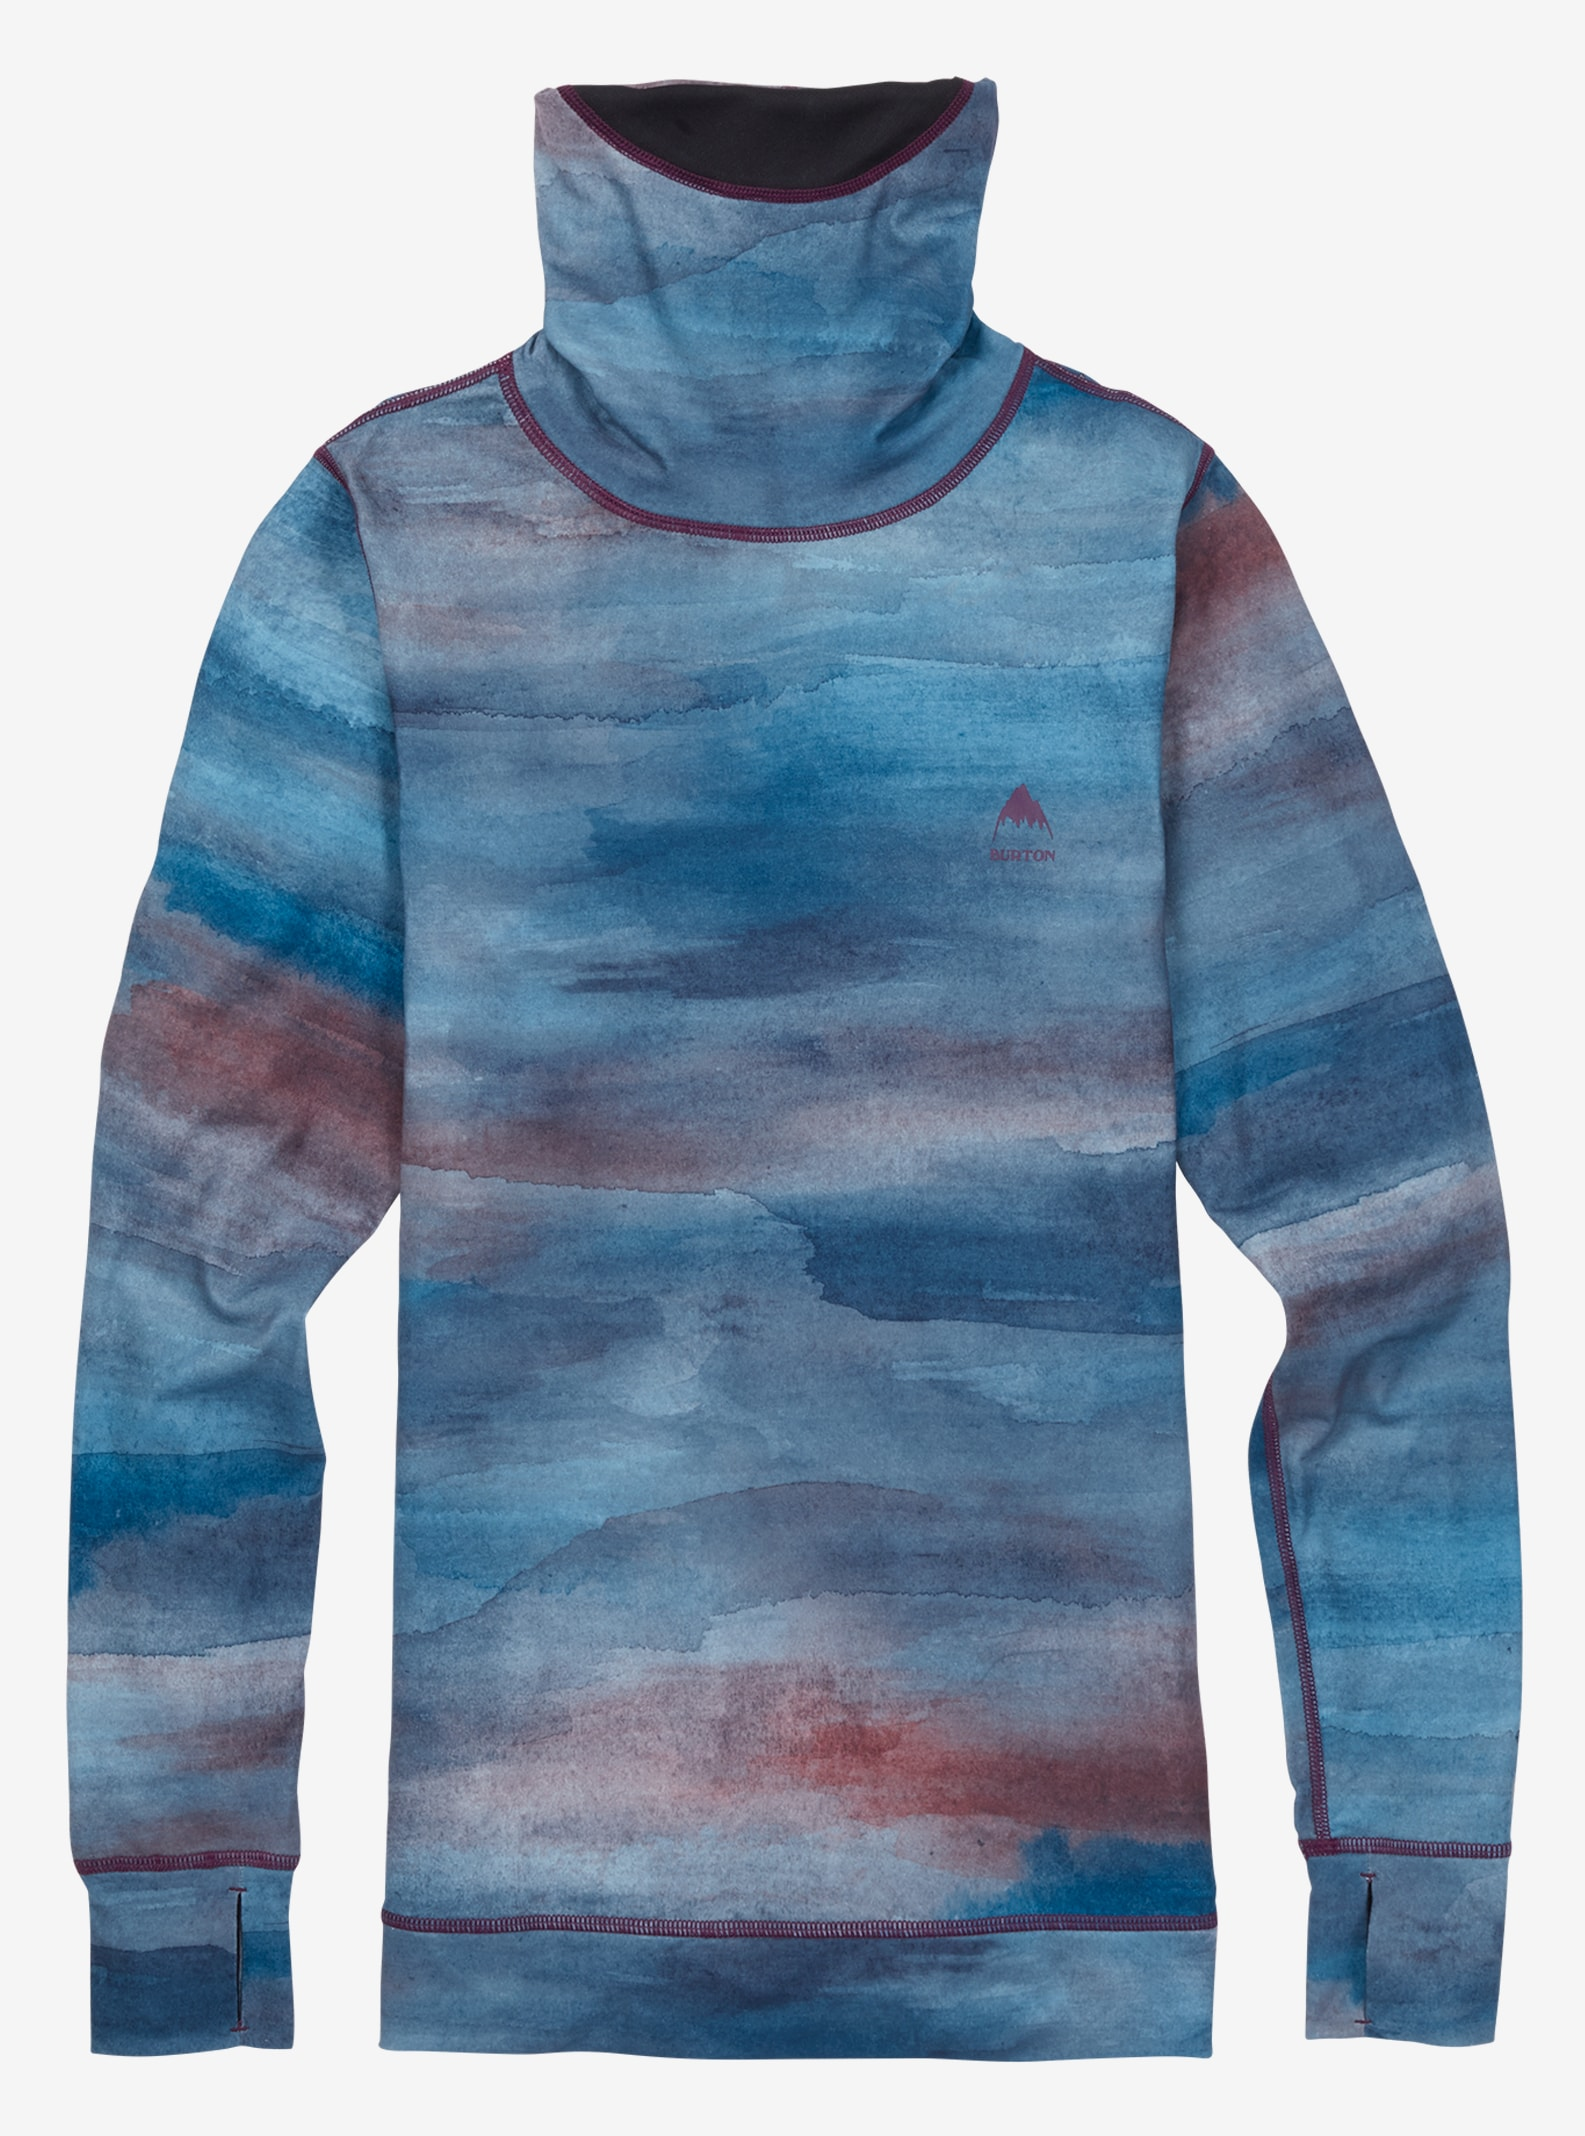 Women's Burton Base Layer Midweight Long Neck shown in Jaded Sedona